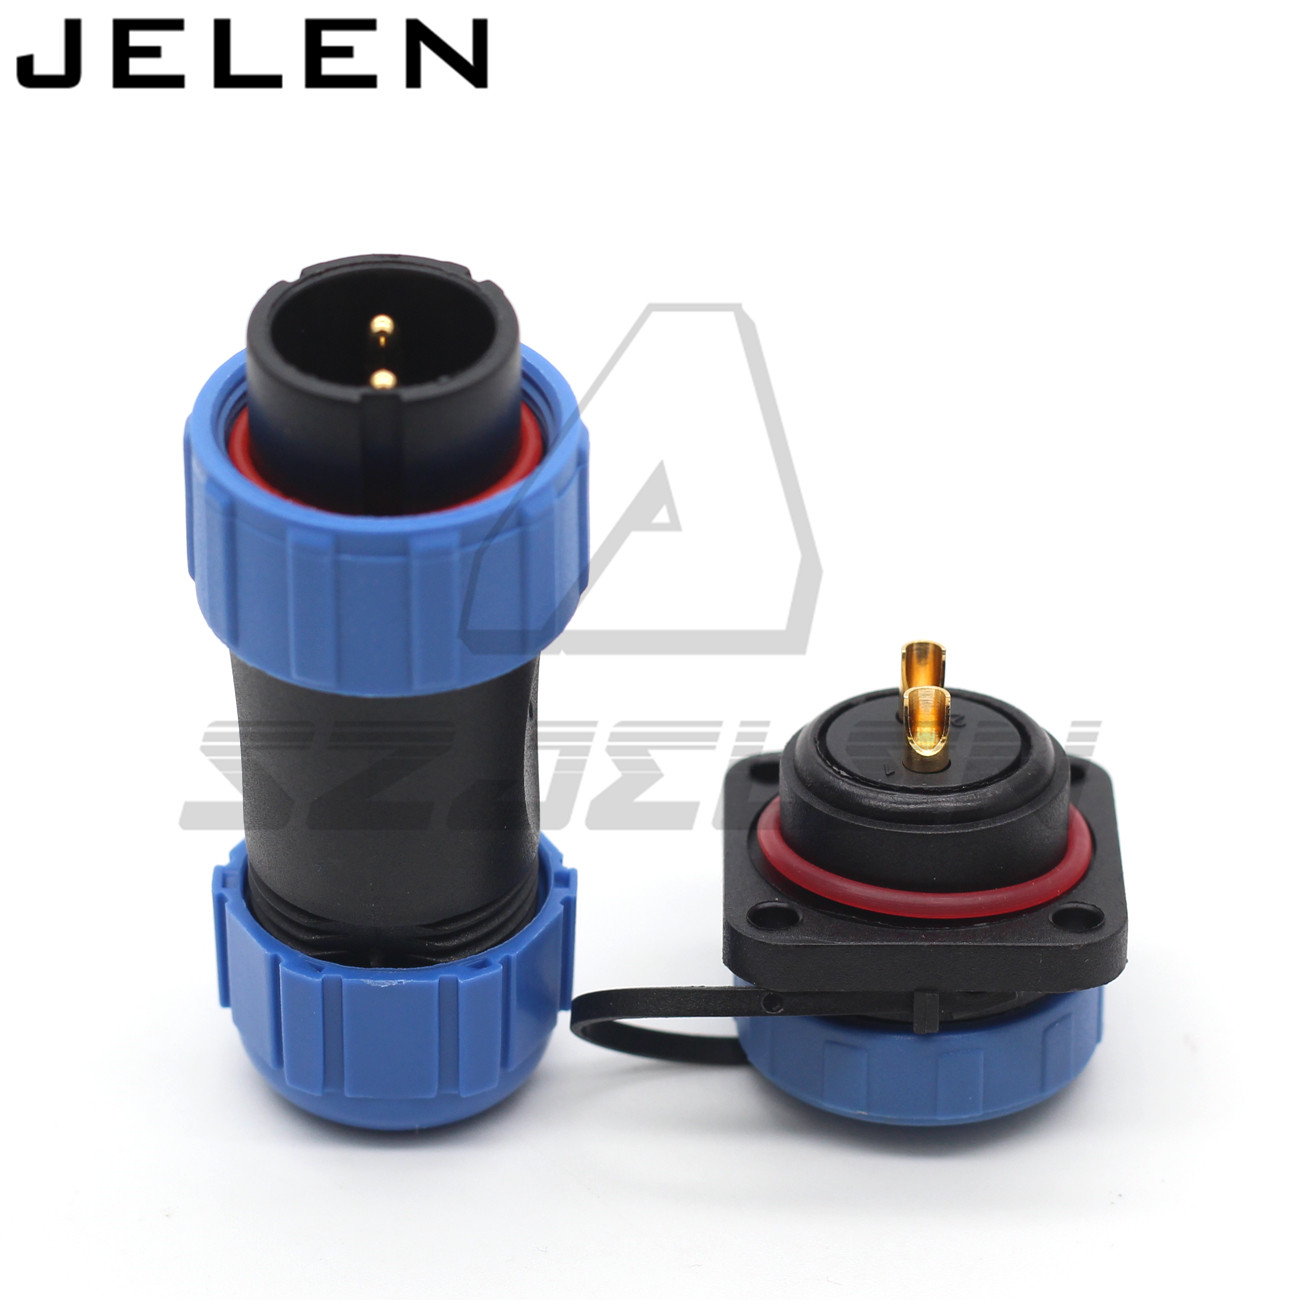 SP21 2pin waterproof Connector  IP68  automotive electrical wire connectors 2 pin plug and socket title=